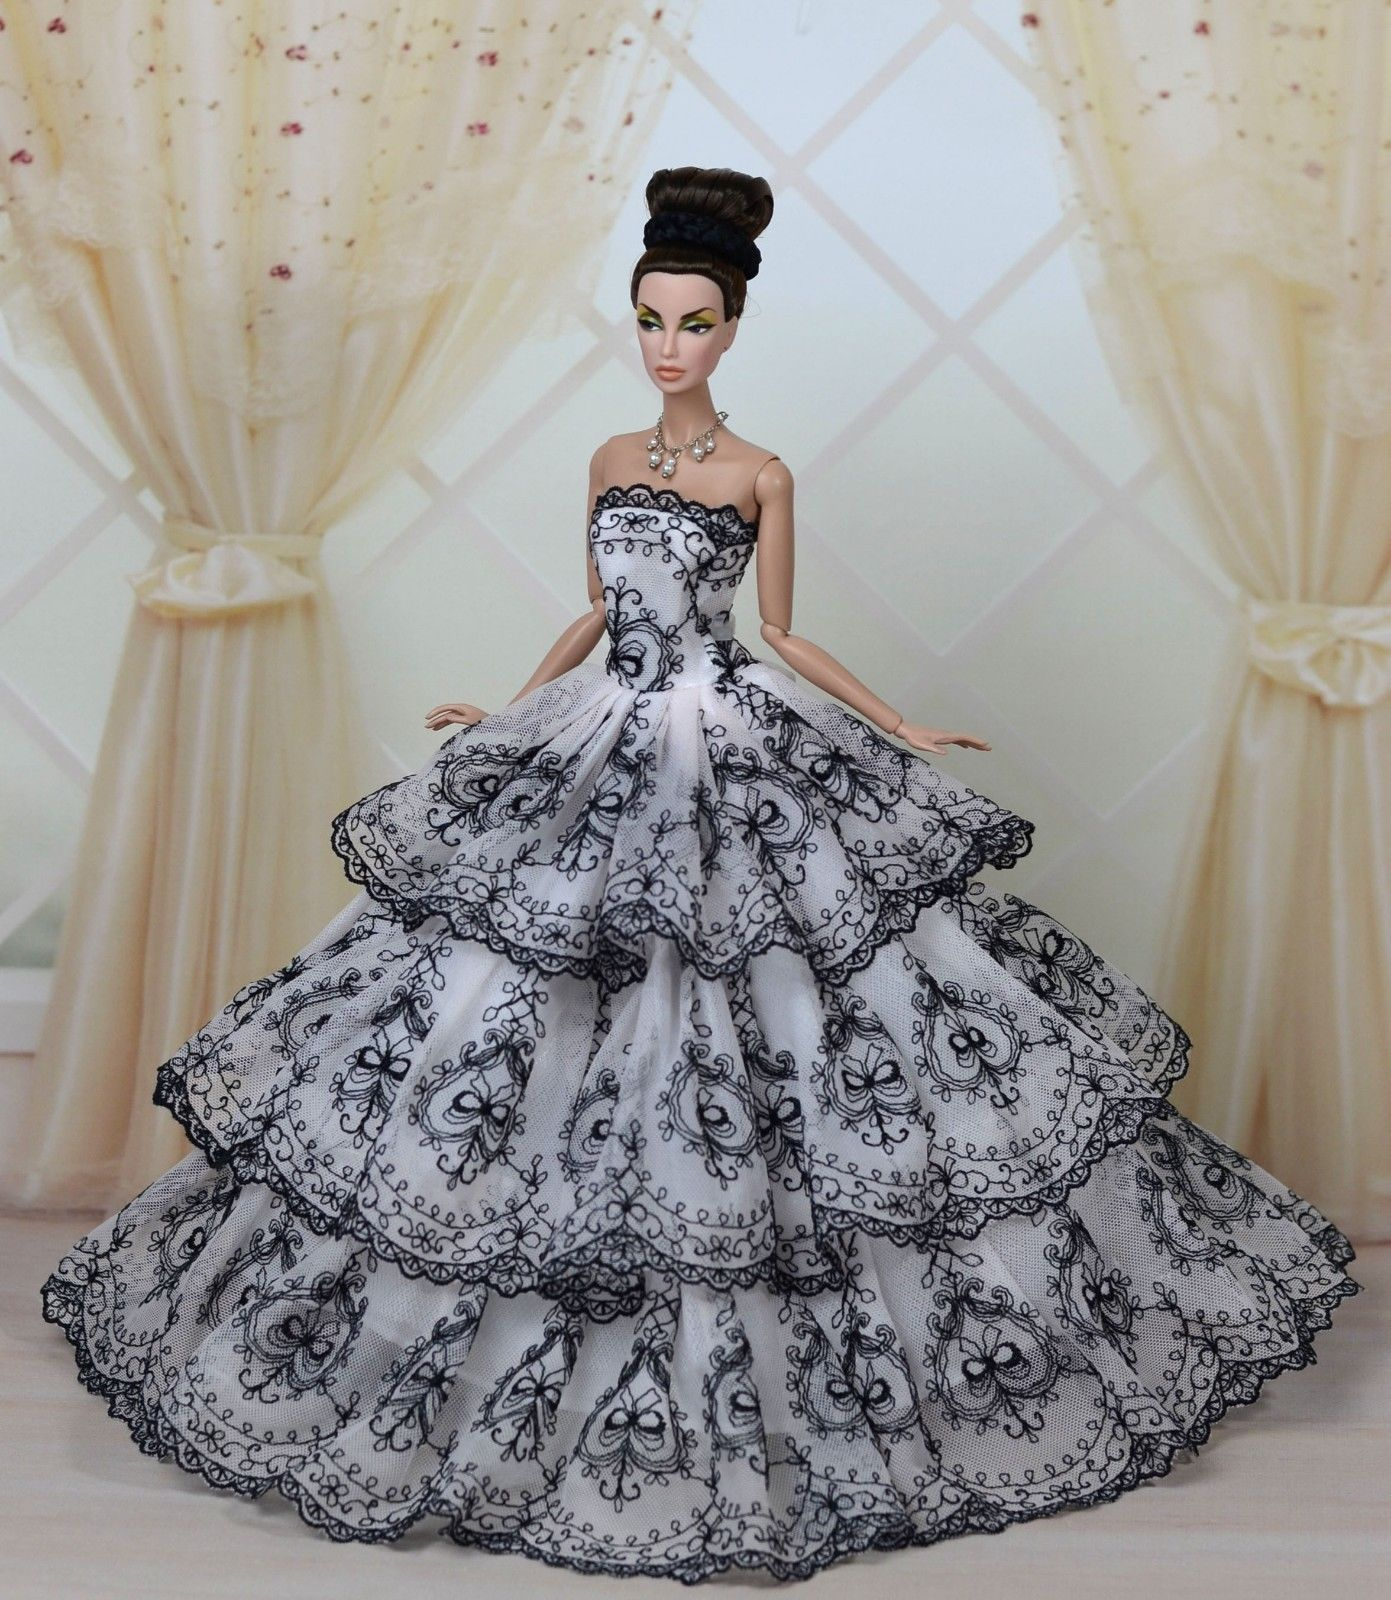 Gorgeous Princess Party Dress//Clothes Wedding Gown+Veil For 11.5in.Doll N03